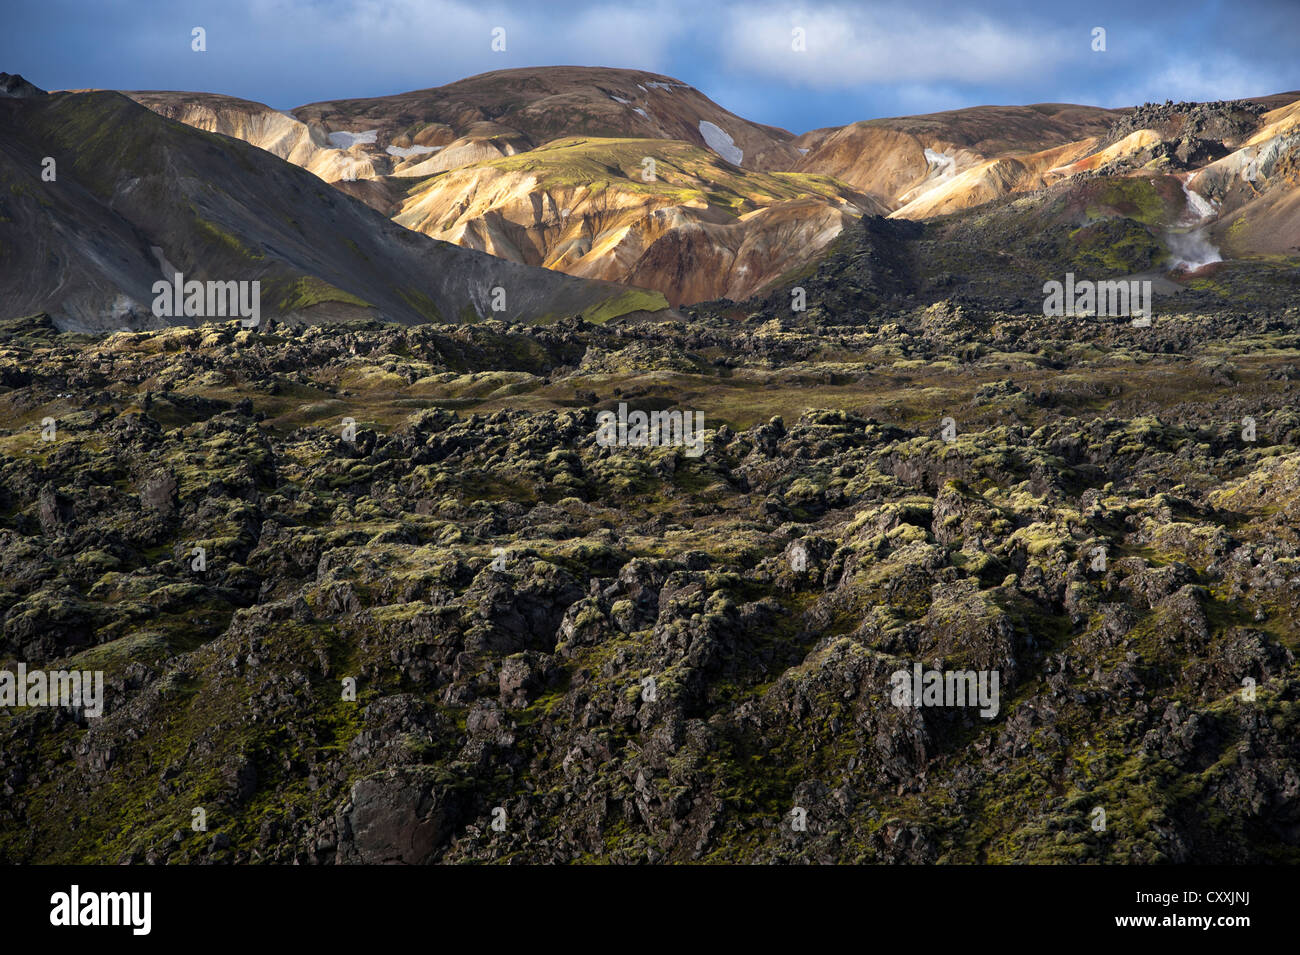 Rhyolite mountains and Laugahraun lava field, Landmannalaugar, Fjallabak Nature Reserve, Highlands of Iceland, Iceland, Stock Photo